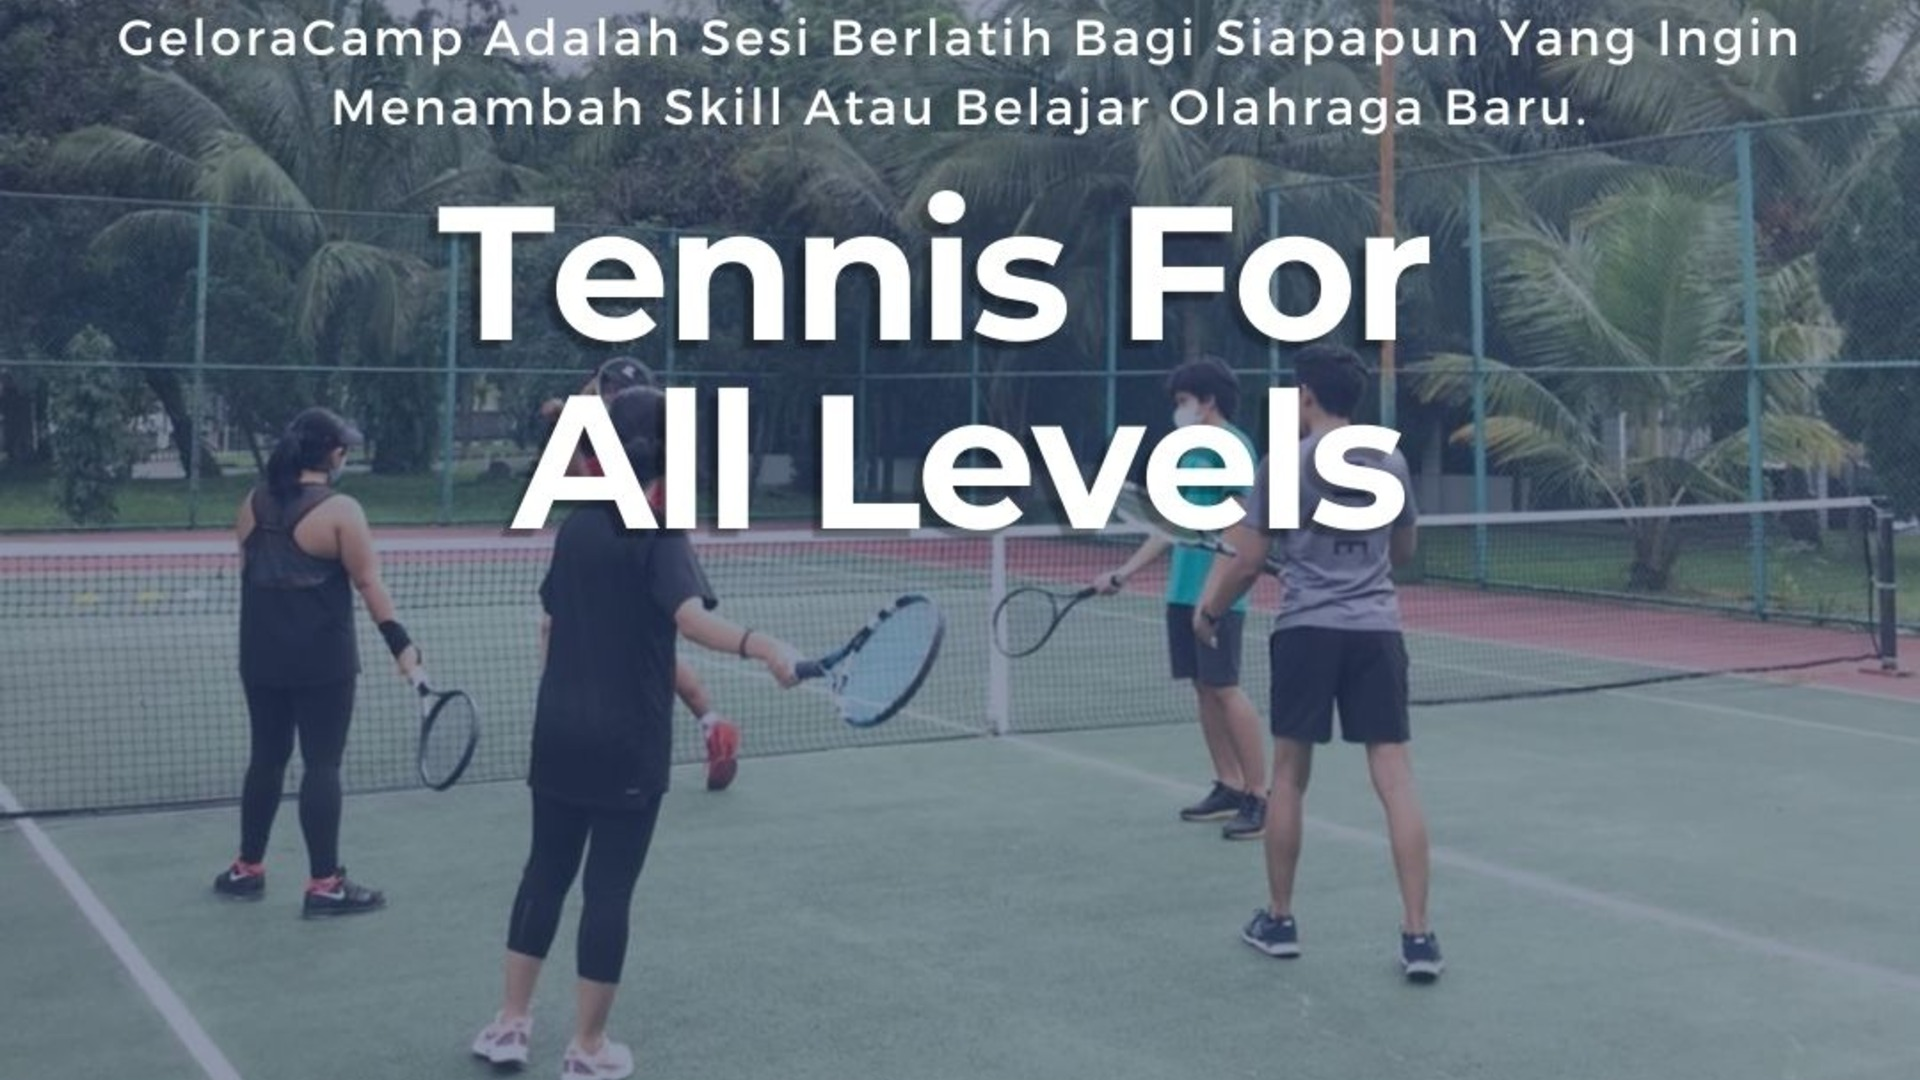 Tenis For All Levels at Bona Indah Tenis Court